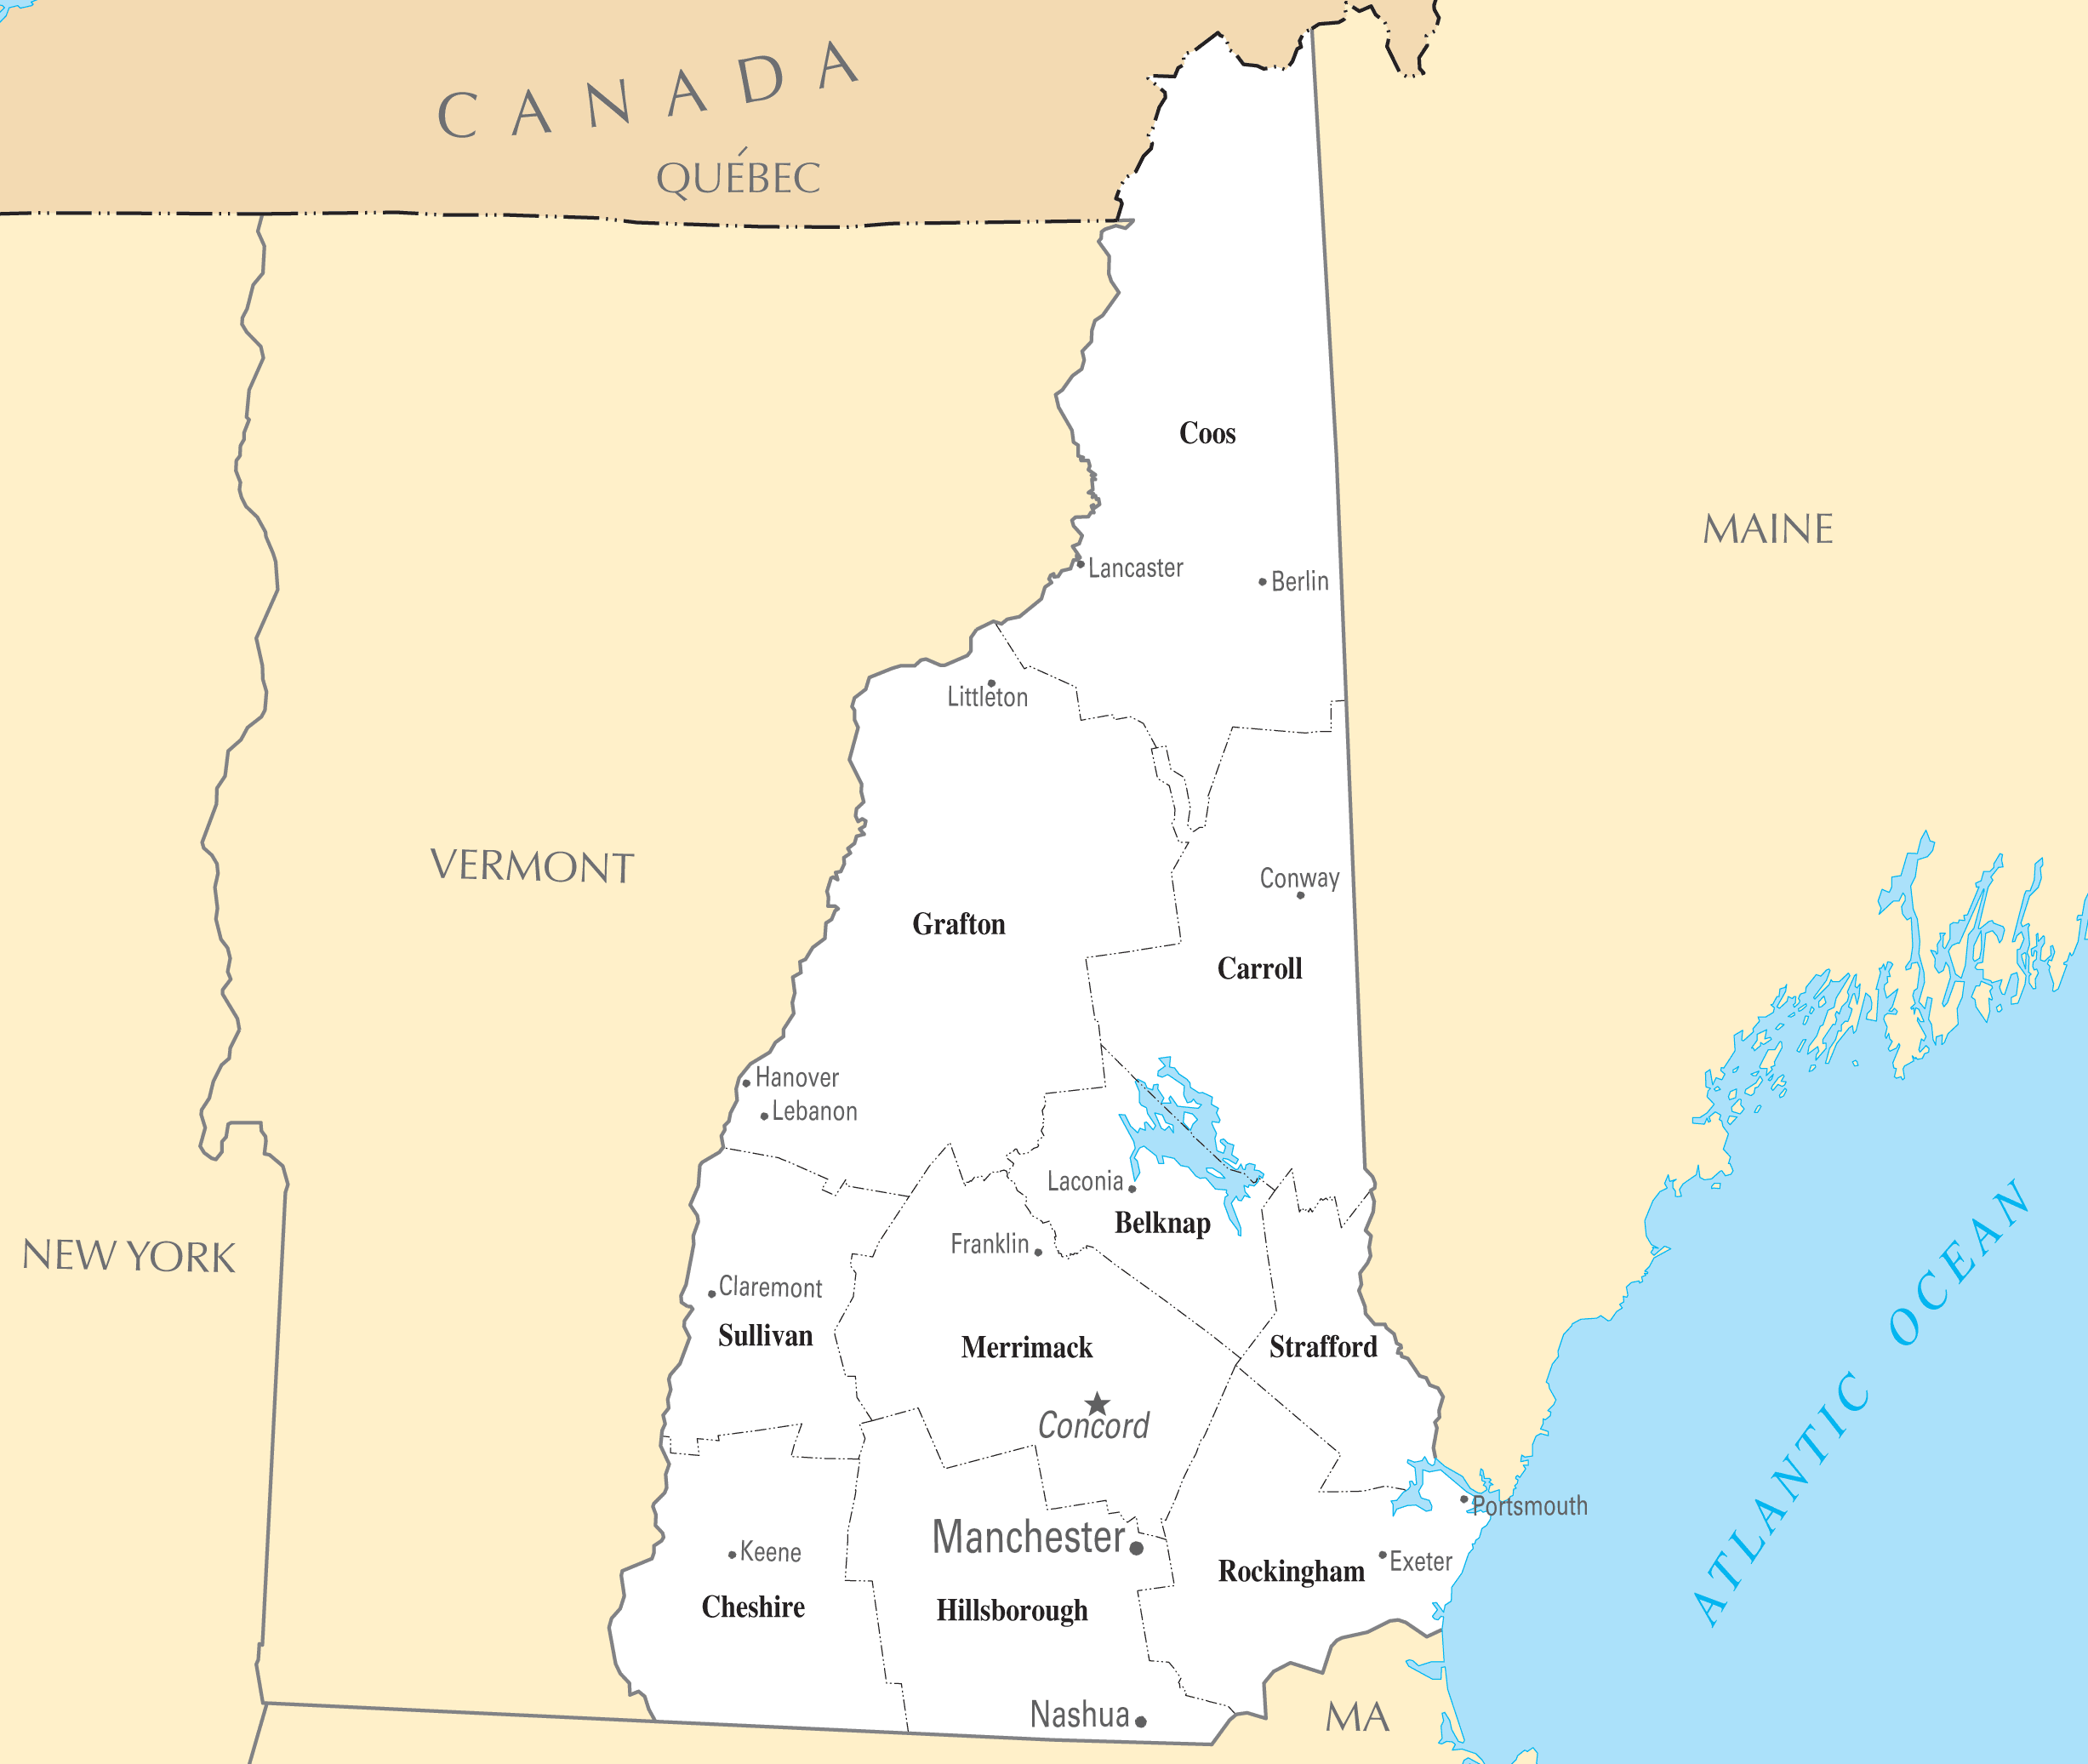 Map Of New Hampshire Cities New Hampshire Cities And Towns • Mapsof.net Map Of New Hampshire Cities